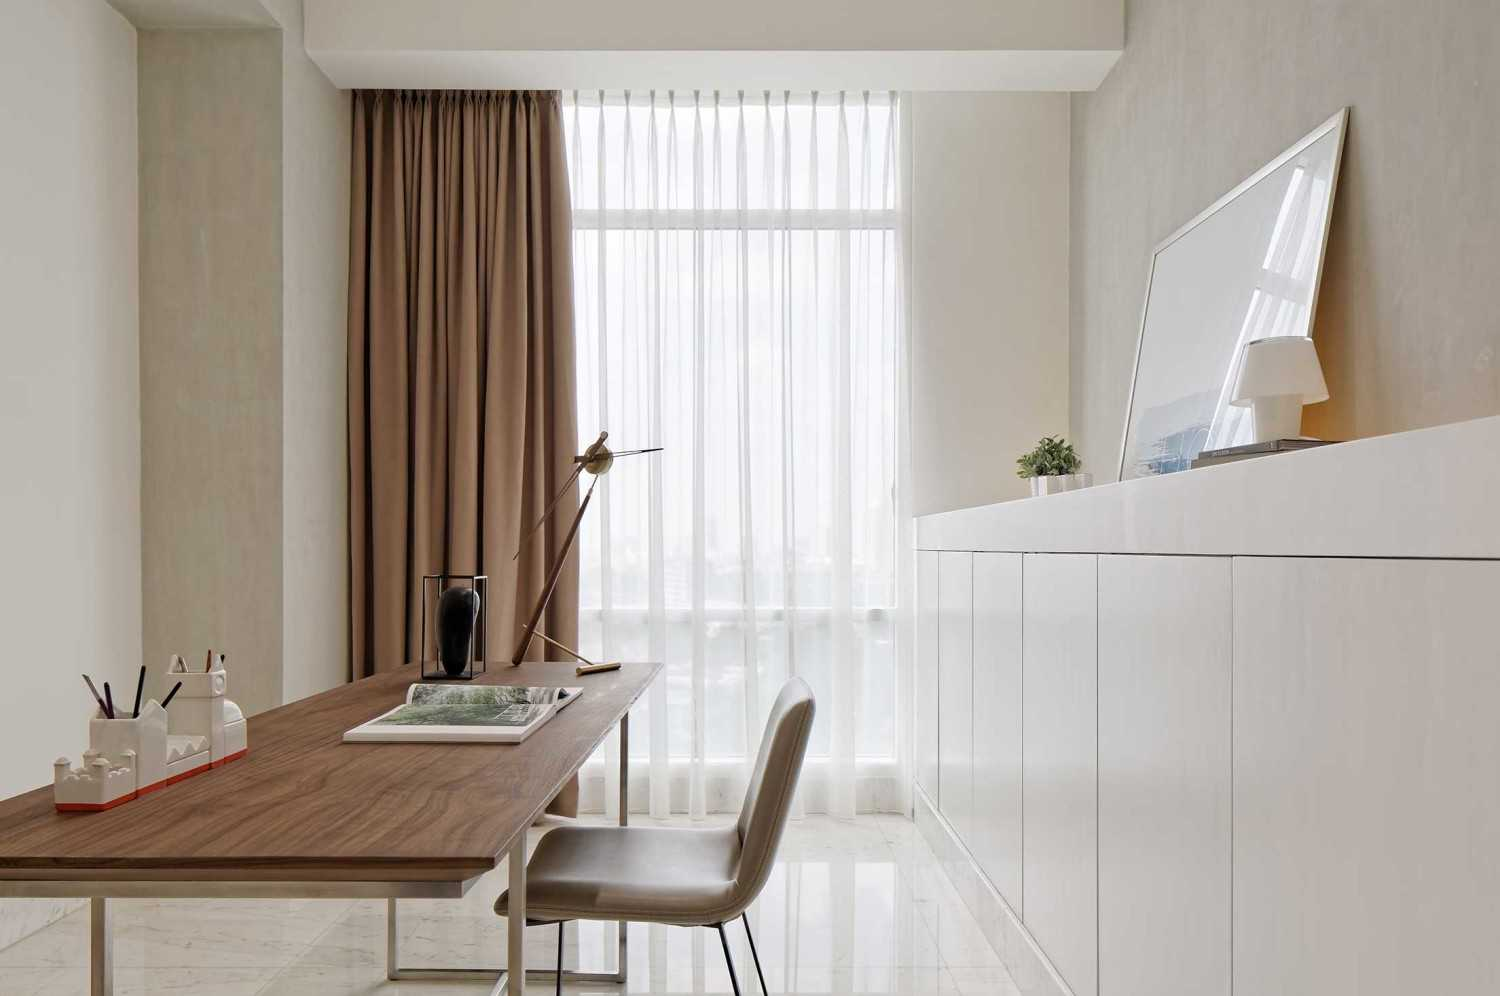 Sontani Partners 11A Residence South Jakarta, Indonesia South Jakarta, Indonesia Home Office Kontemporer,industrial,wood,modern 21398